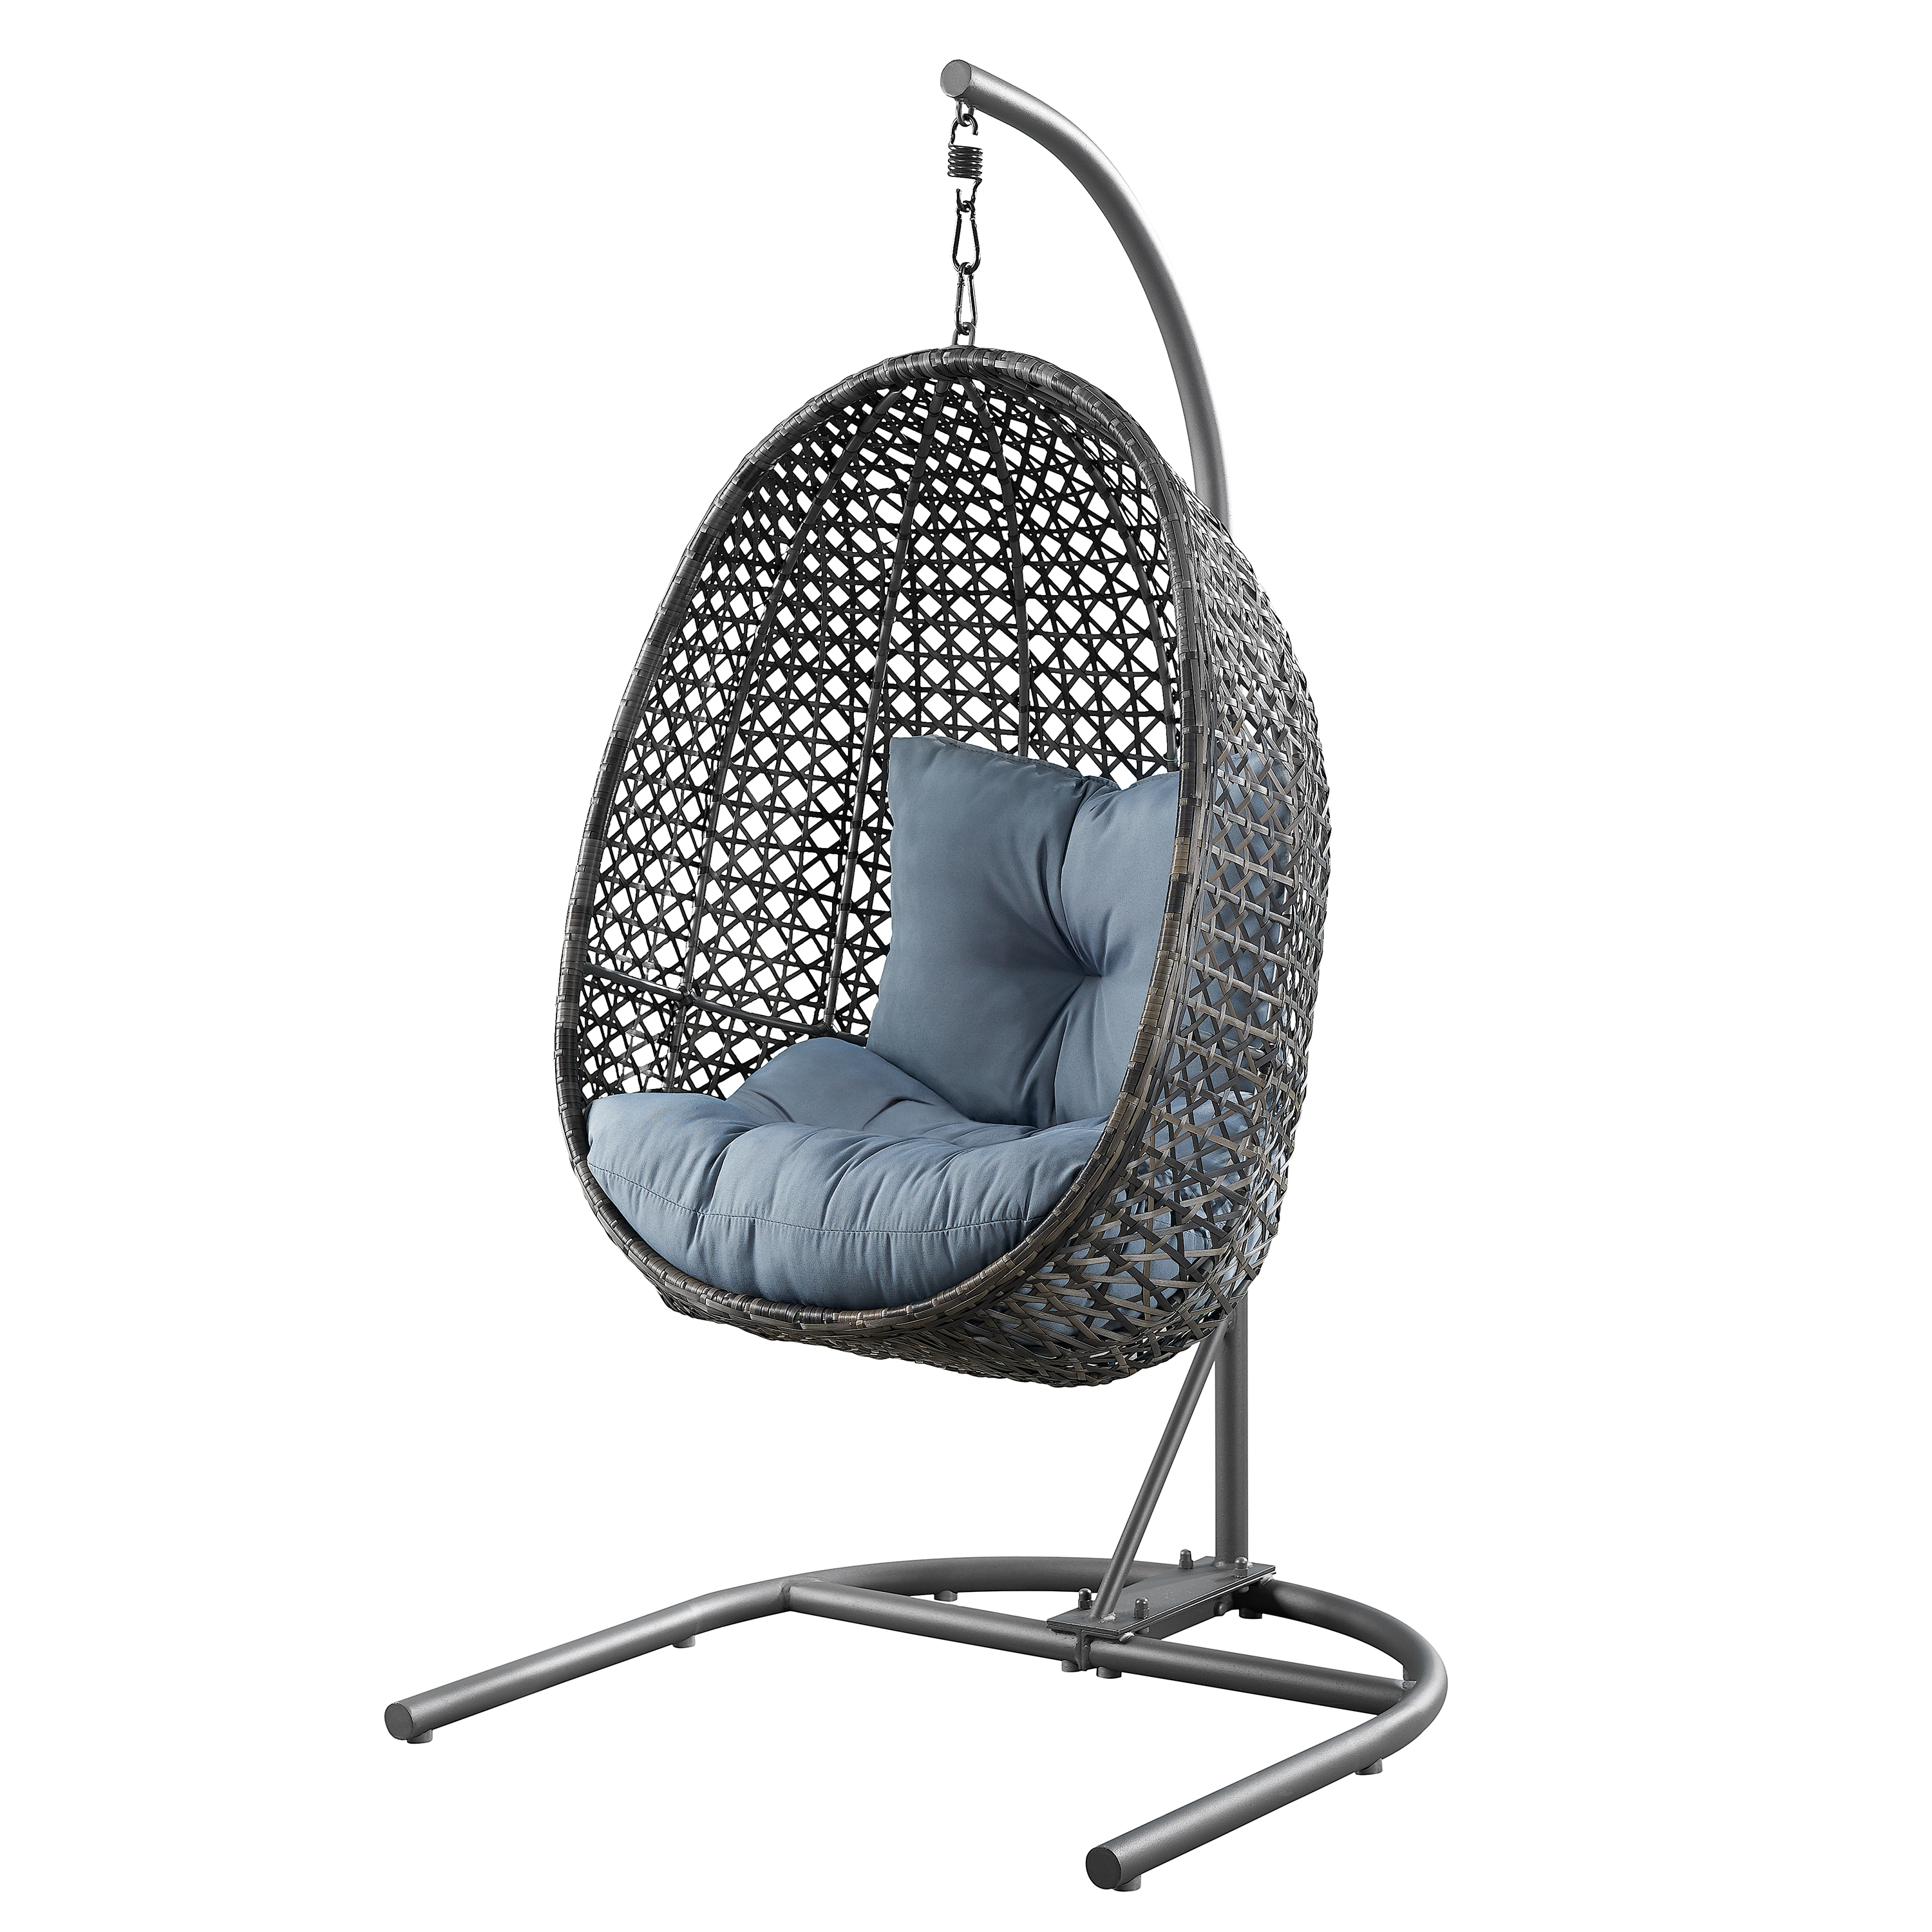 Hanging Patio Chair Better Homes Gardens Lantis Patio Wicker Hanging Chair Walmart